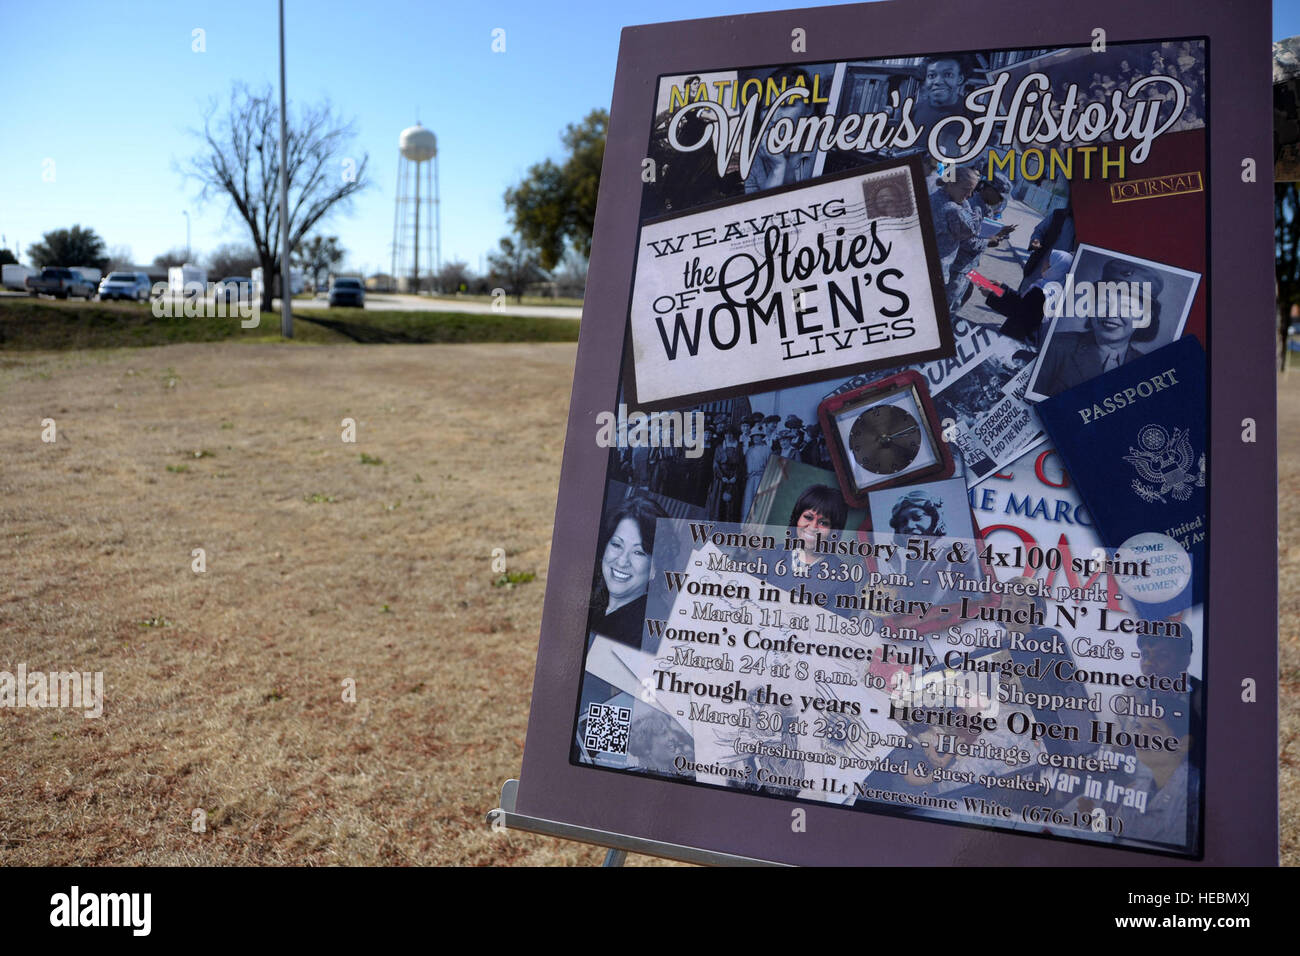 Women's History Month kicked off at Sheppard Air Force Base Texas with the 'women in history' 5K fun - Stock Image